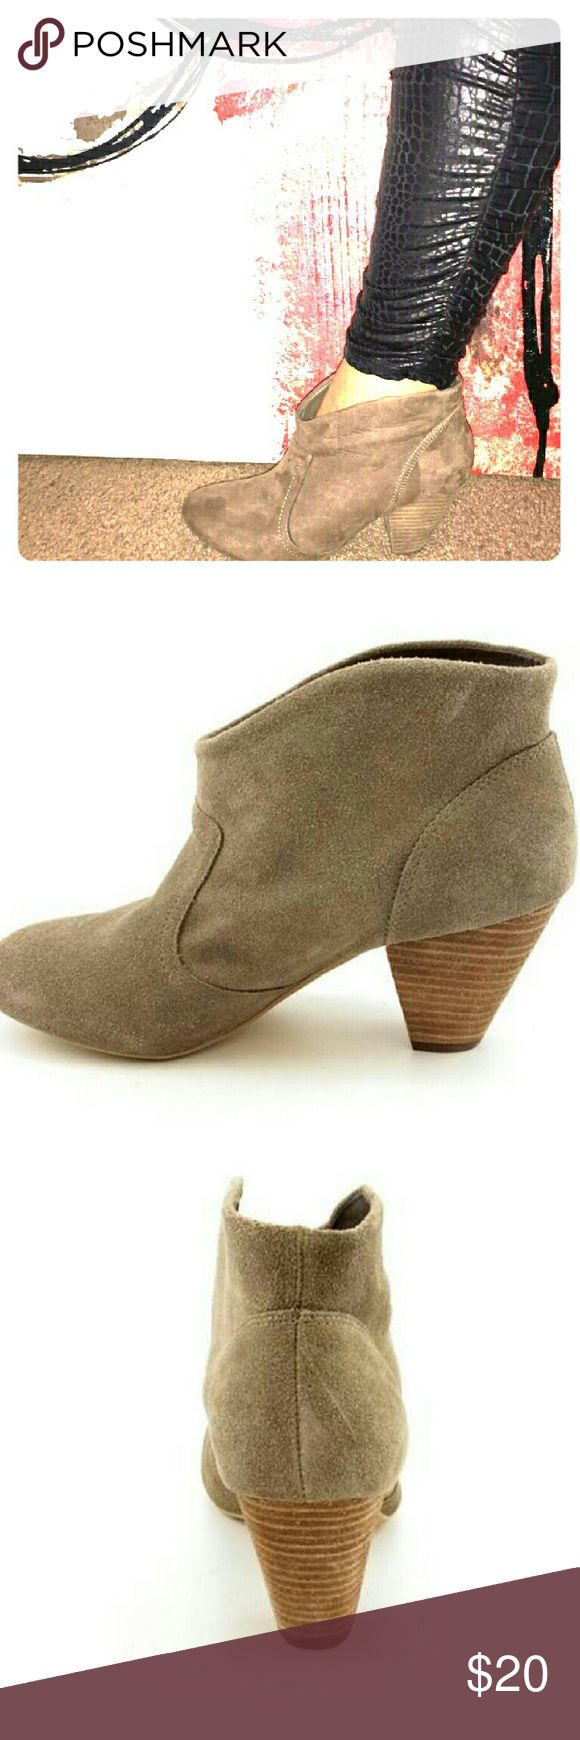 Carlos Santana boots Carlos Santana boots suede cowboy style.In very good conditions. The boots can be worn with skinny jeans, dresses,  and are very cute, sexy, and comfortable. Carlos Santana Shoes Ankle Boots & Booties